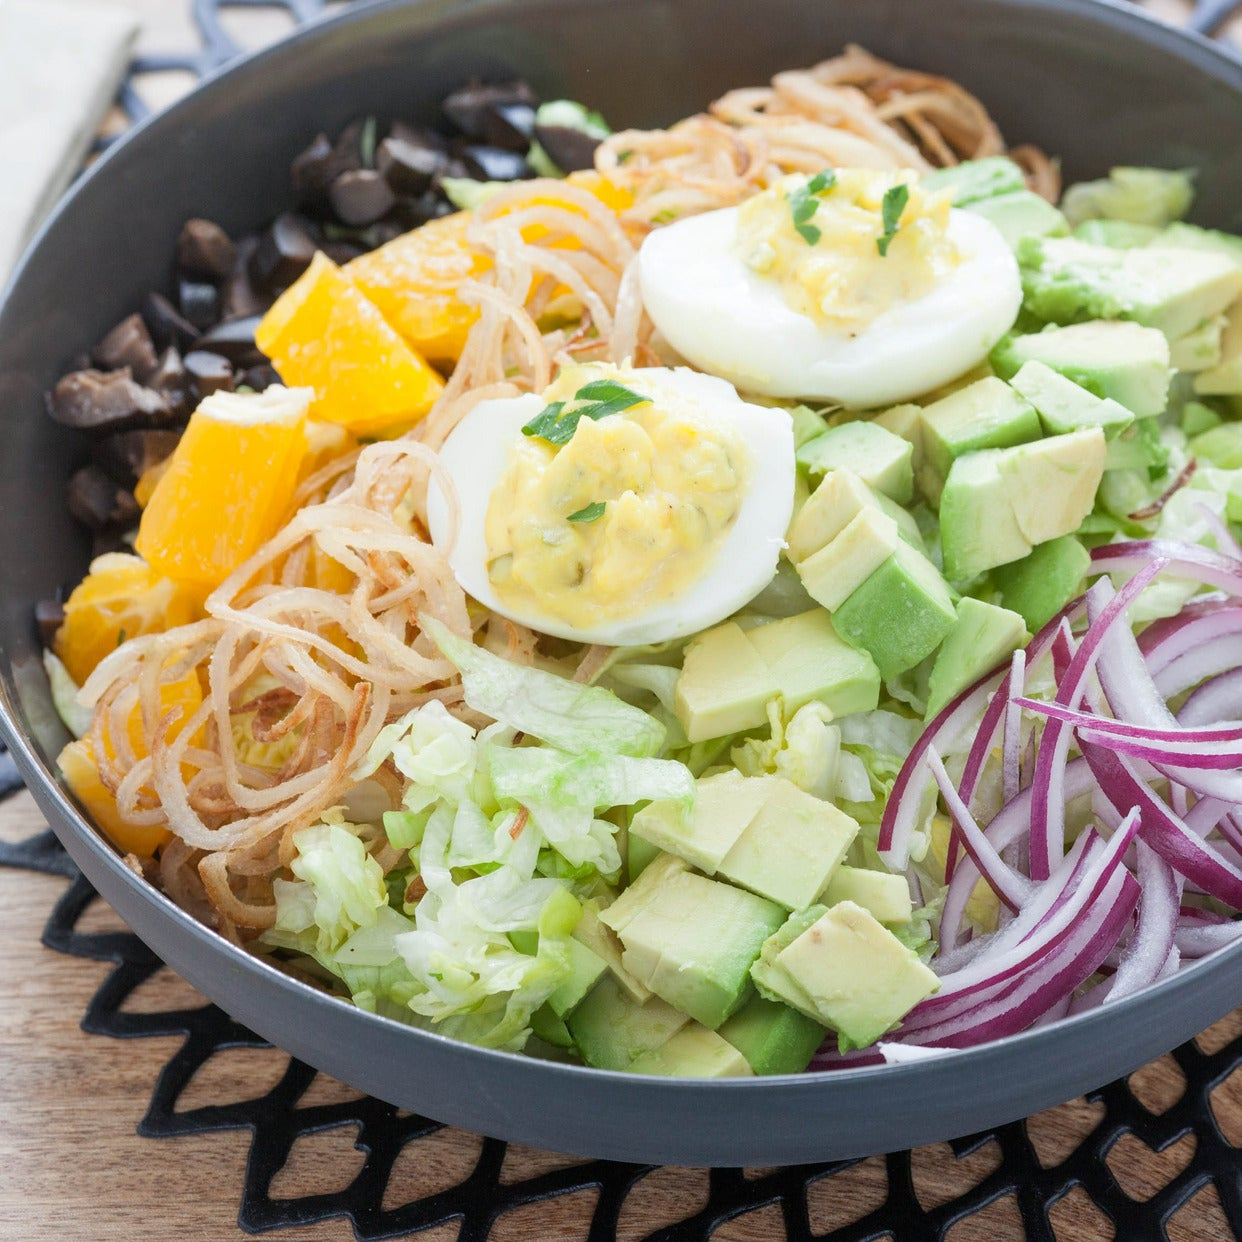 Vegetarian Cobb Salad with Crispy Shallots & Deviled Eggs